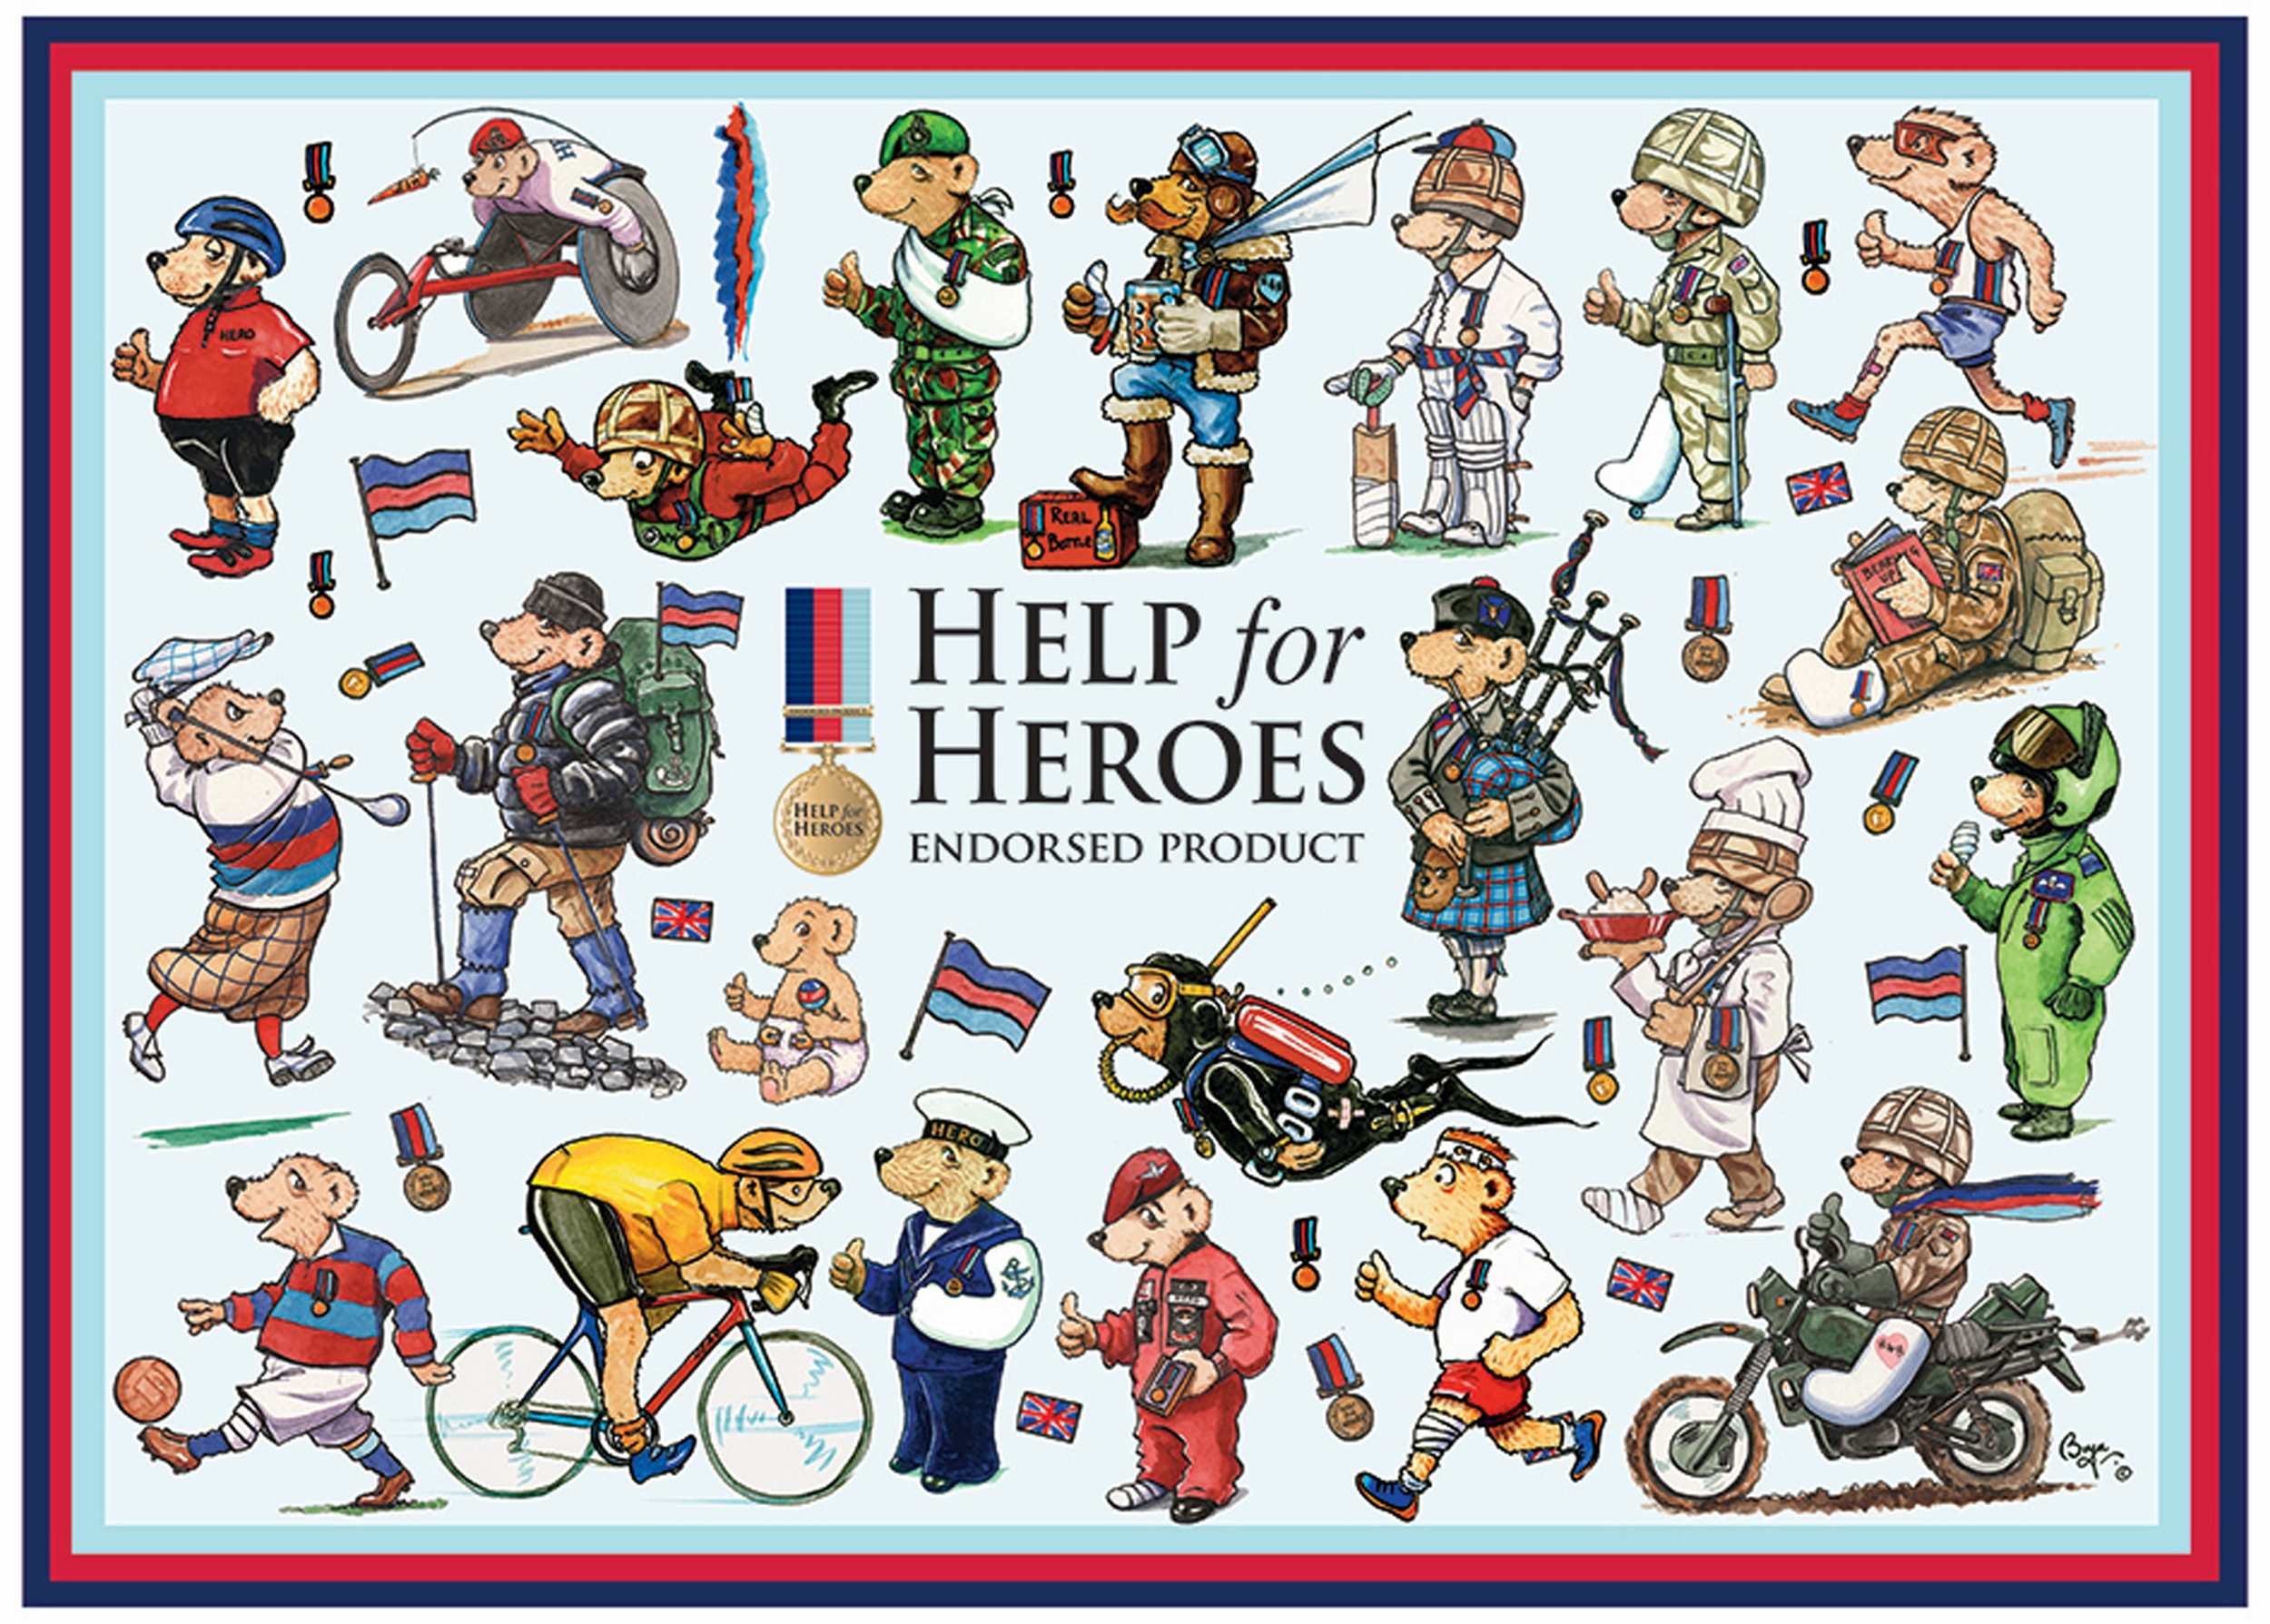 otter-house-puzzle-help-for-heroes-bears-1000-teile-puzzle-otter-house-puzzle-73337